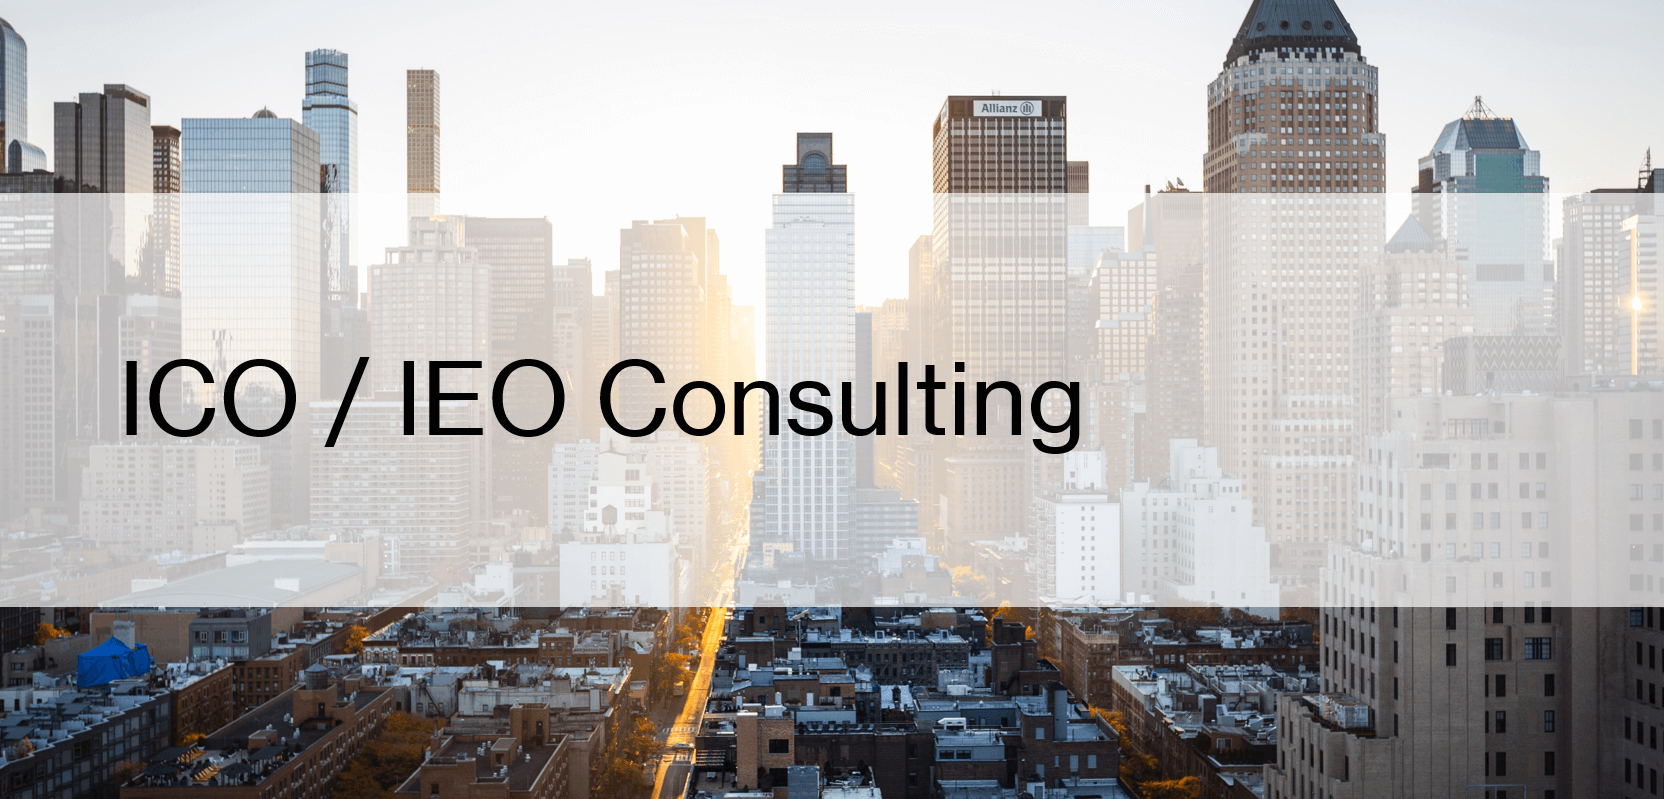 ICO / IEO Consulting